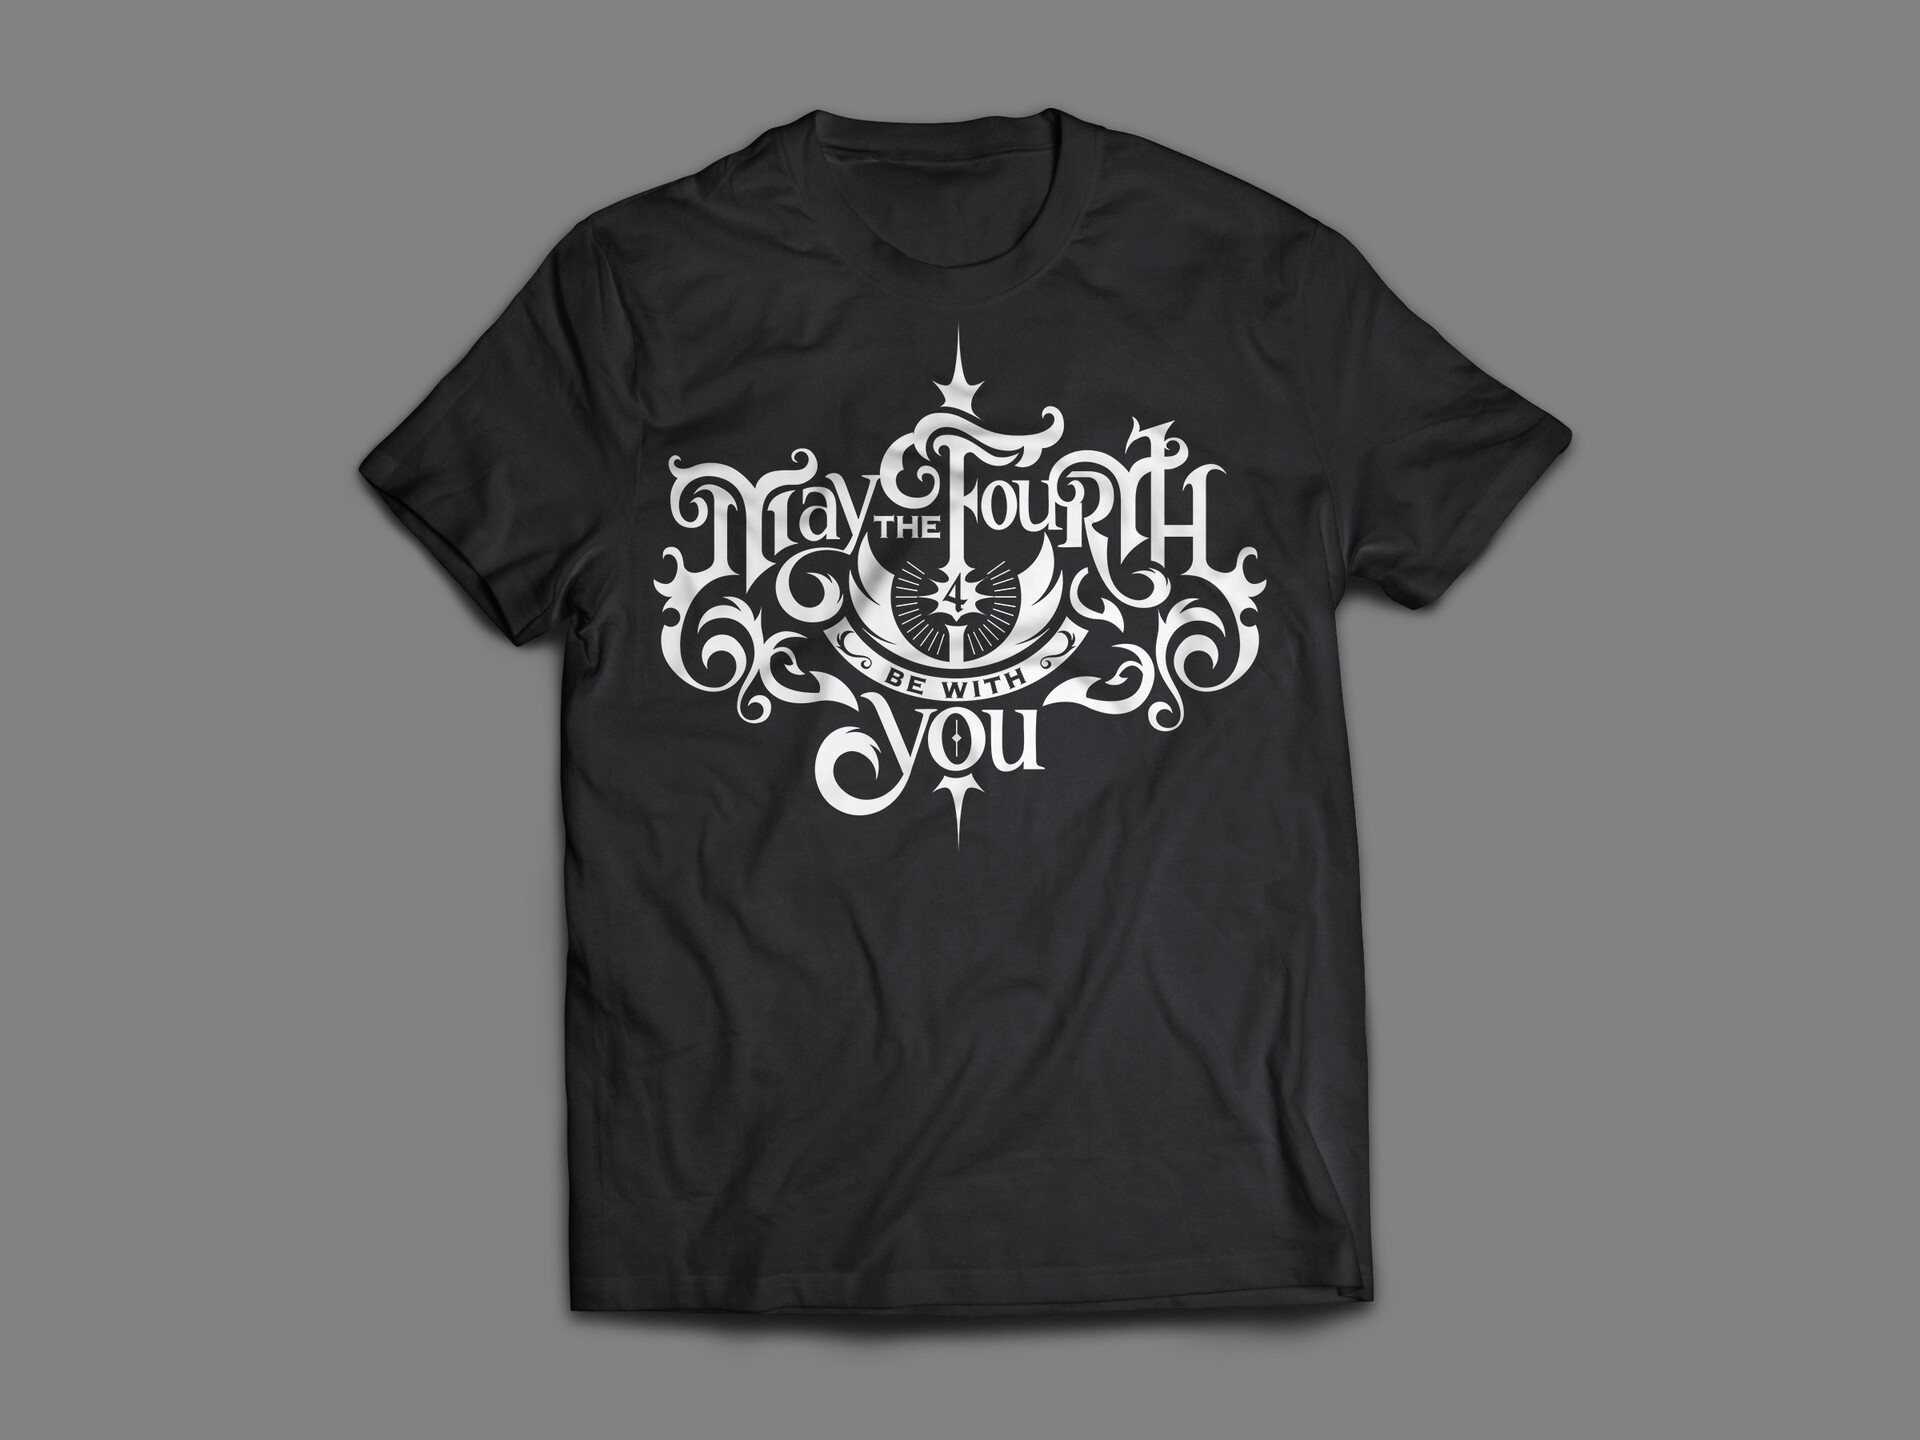 May the Fourth be with You Tshirt Mockup